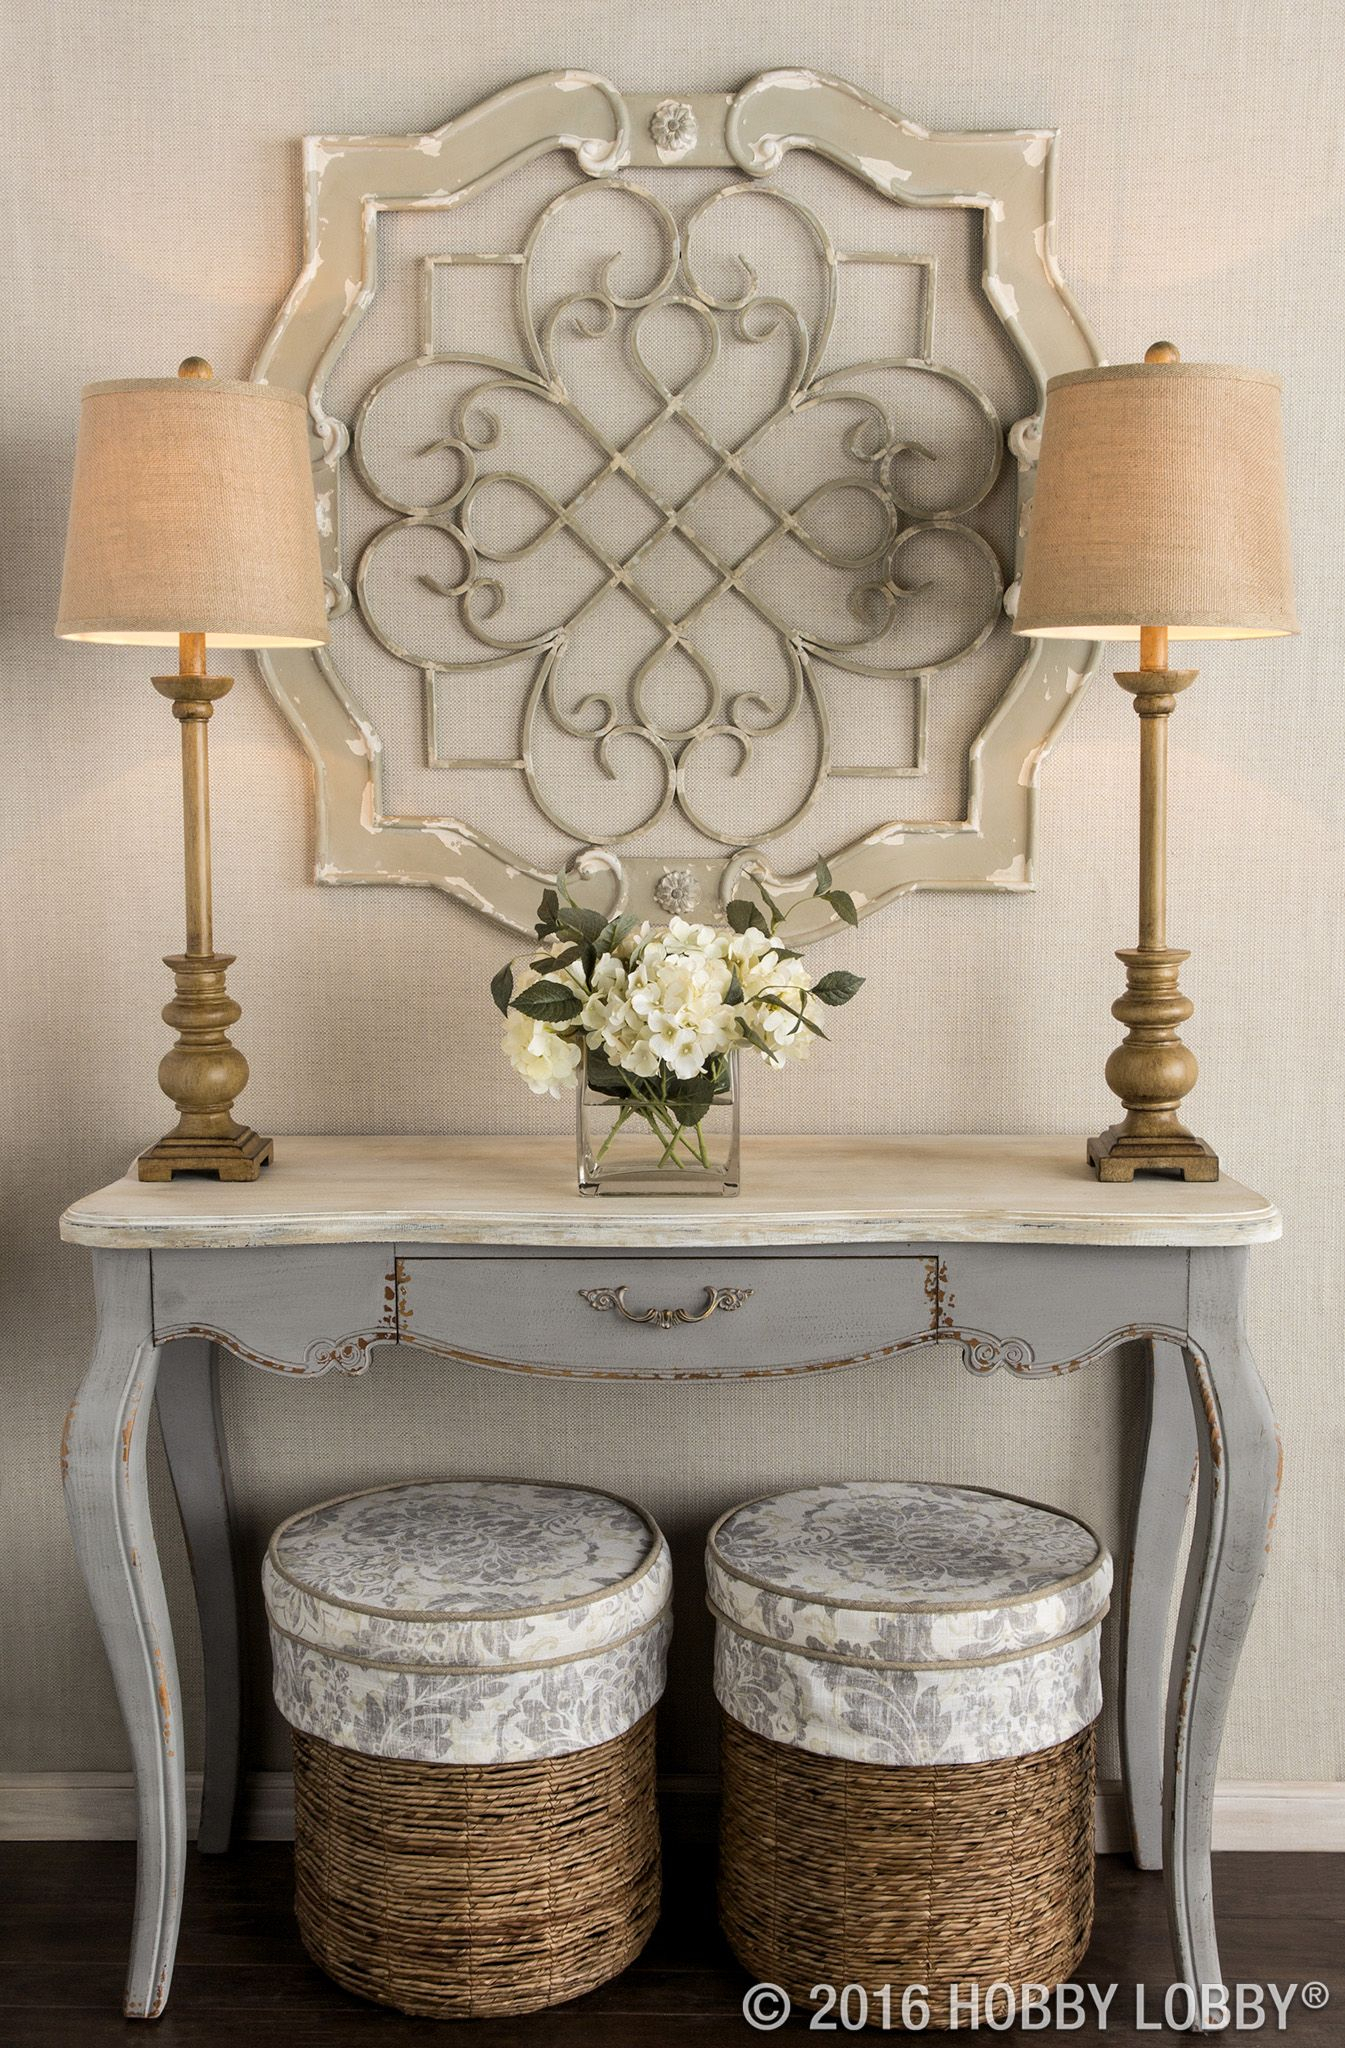 Add Architectural Elegance To Your Entryway With This intended for Small Medallion Wall Decor (Image 2 of 30)